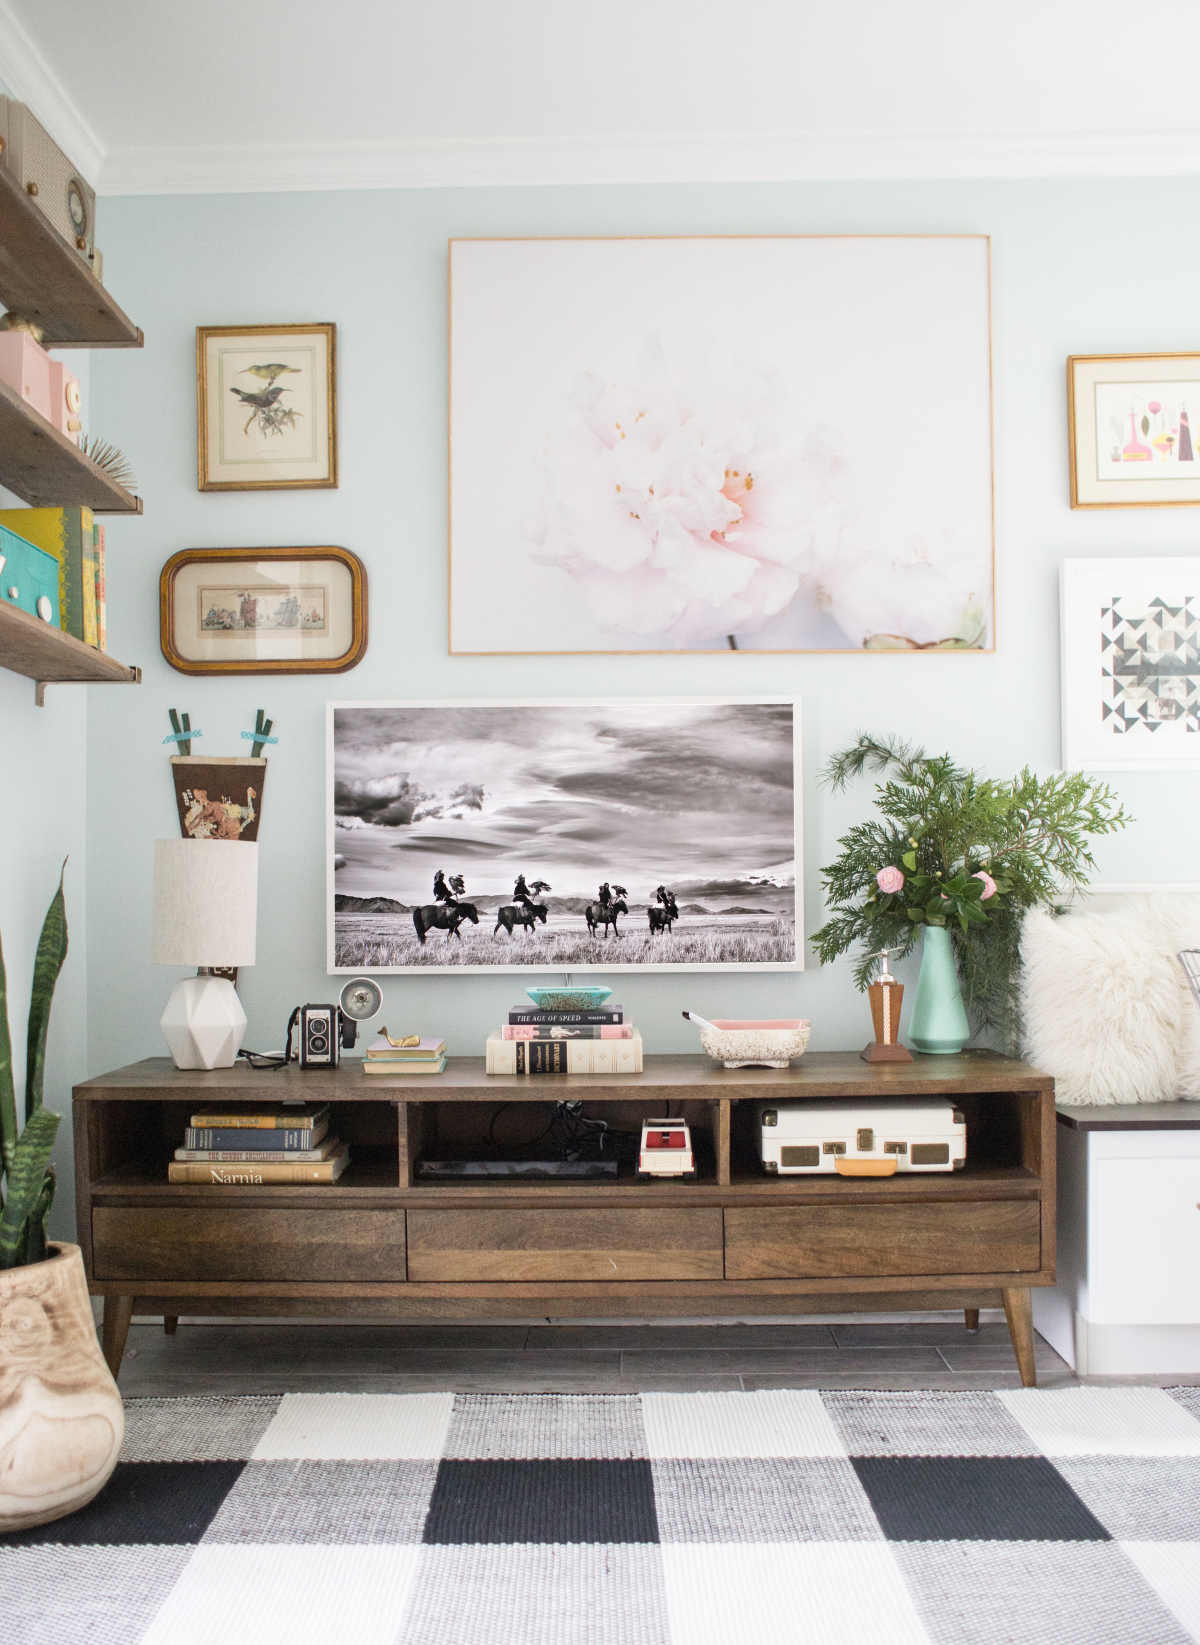 How To Design Around The TV In Your Living Room - Lay Baby Lay